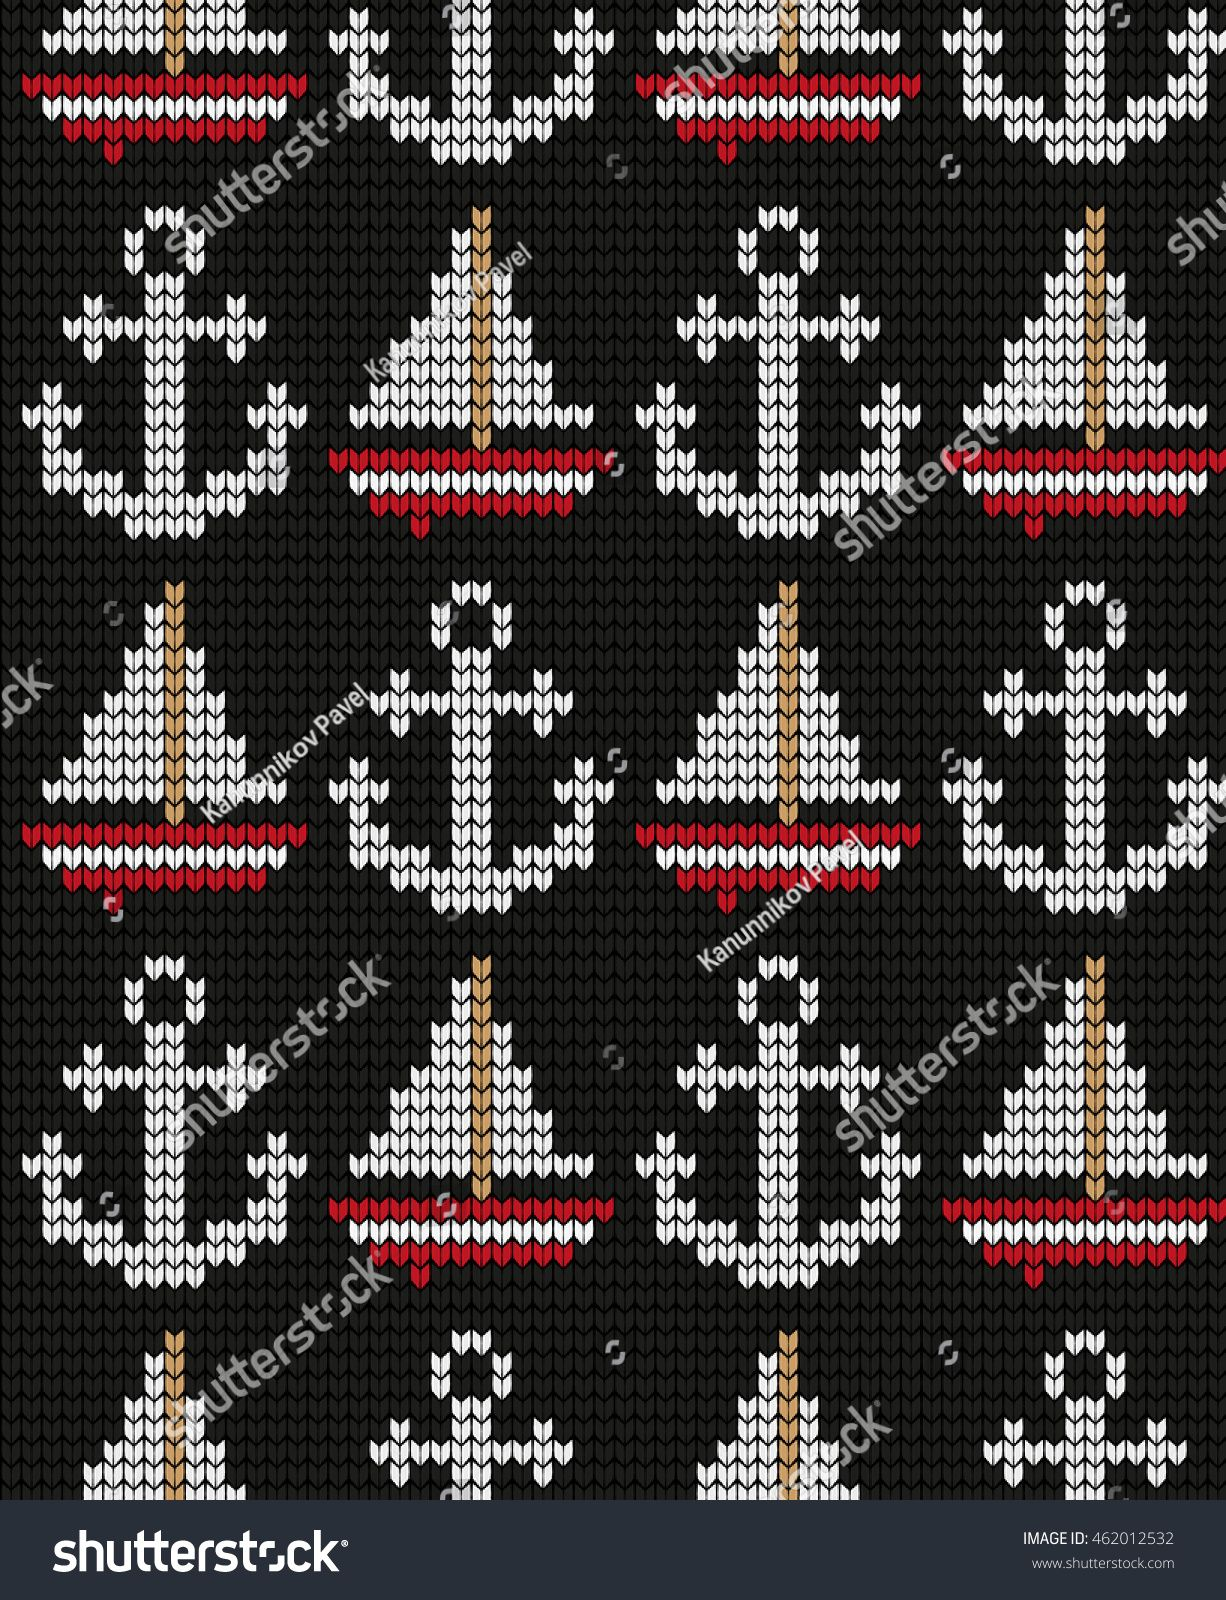 Photo of Stricken Marine Seamless Pattern Stock Vector (Lizenzfrei) 462012532